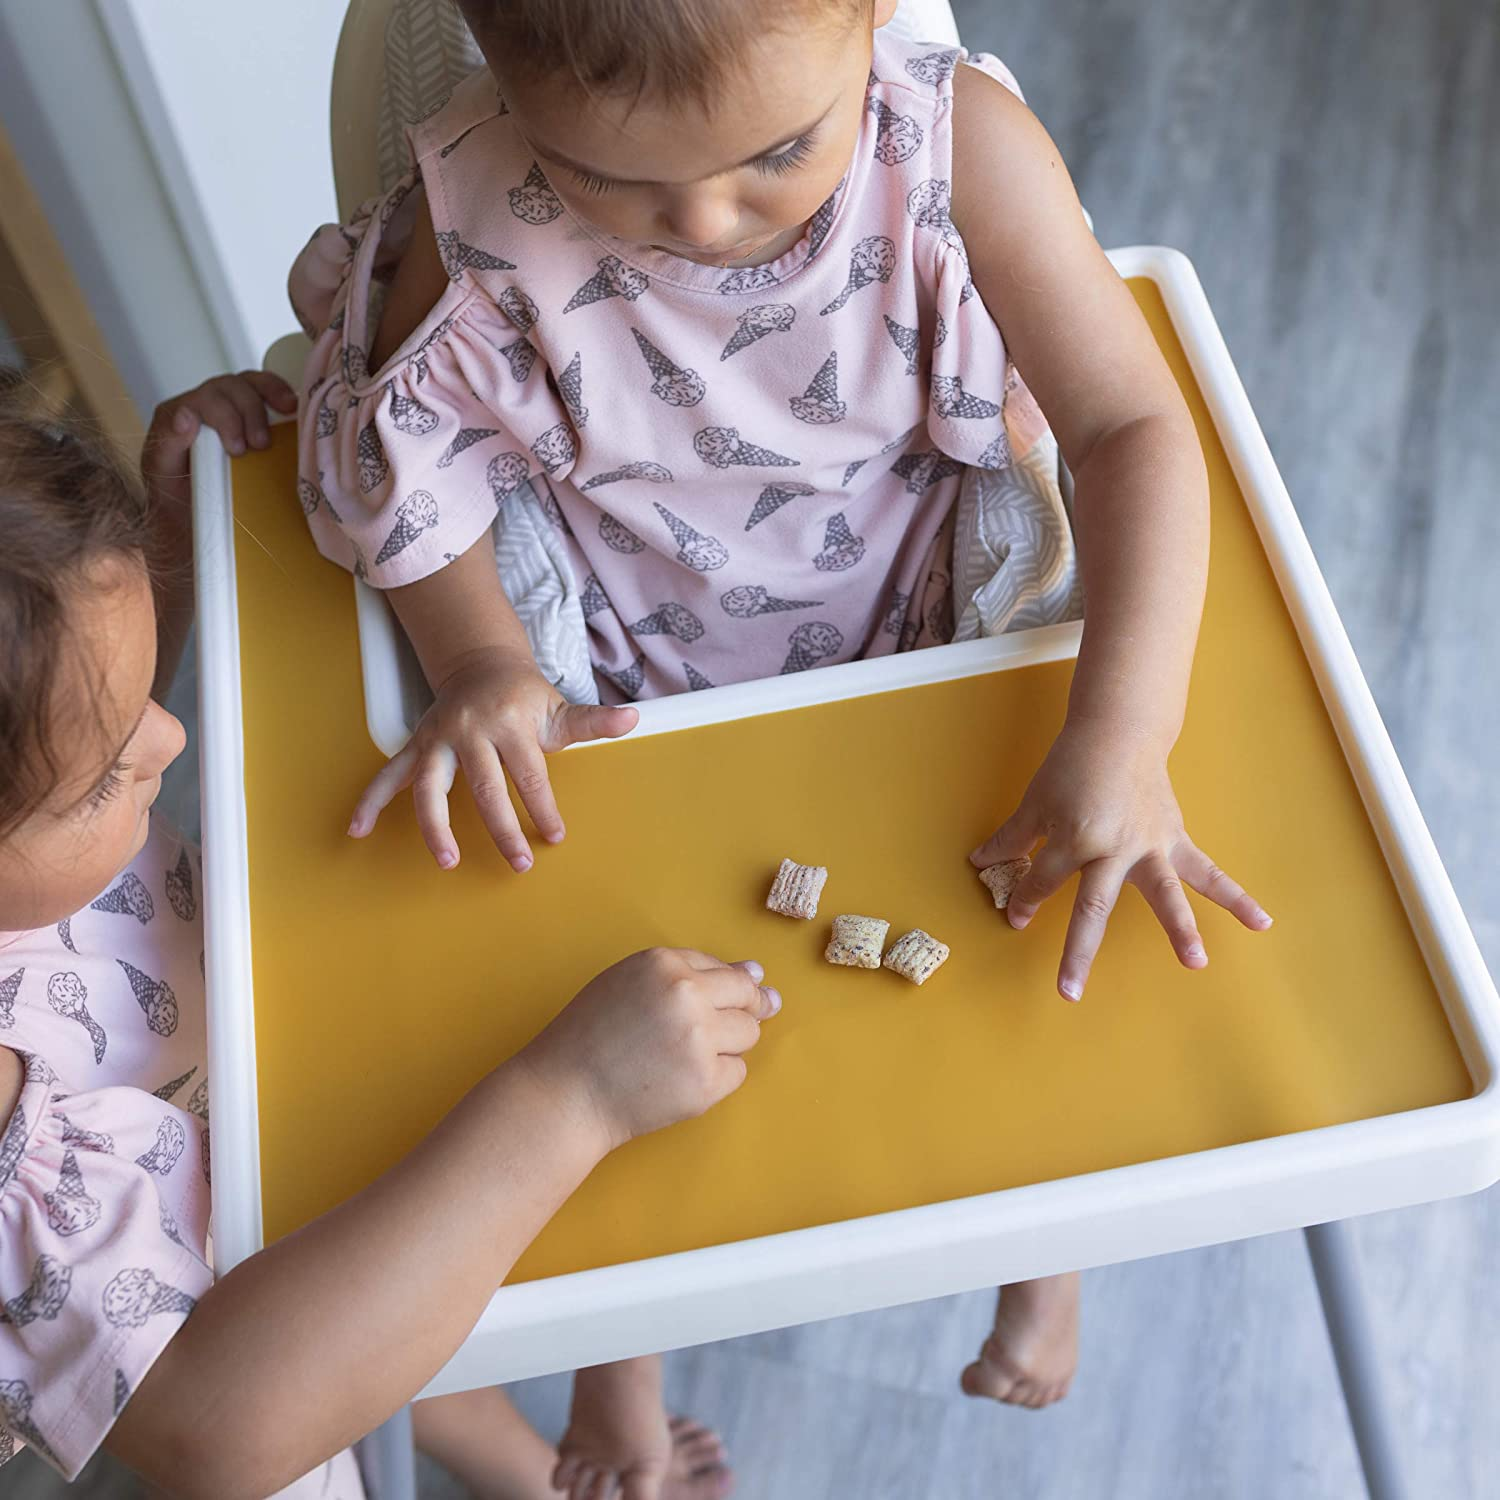 Finger Foods Placemat for Toddler and Baby IKEA High Chair Placemat for Antilop Baby High Chair Dishwasher Safe Silicone Placemats BPA Free Mango Co Charcoal Gray